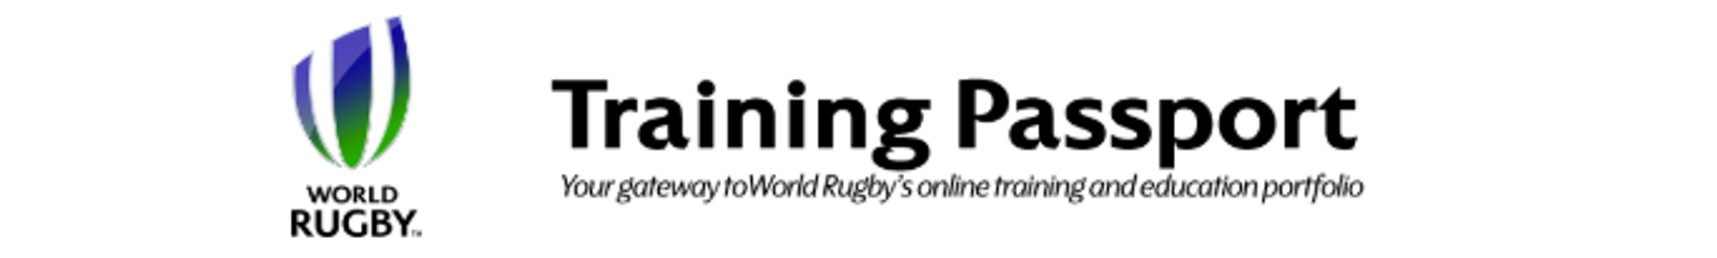 World Rugby Training Passport.jpg